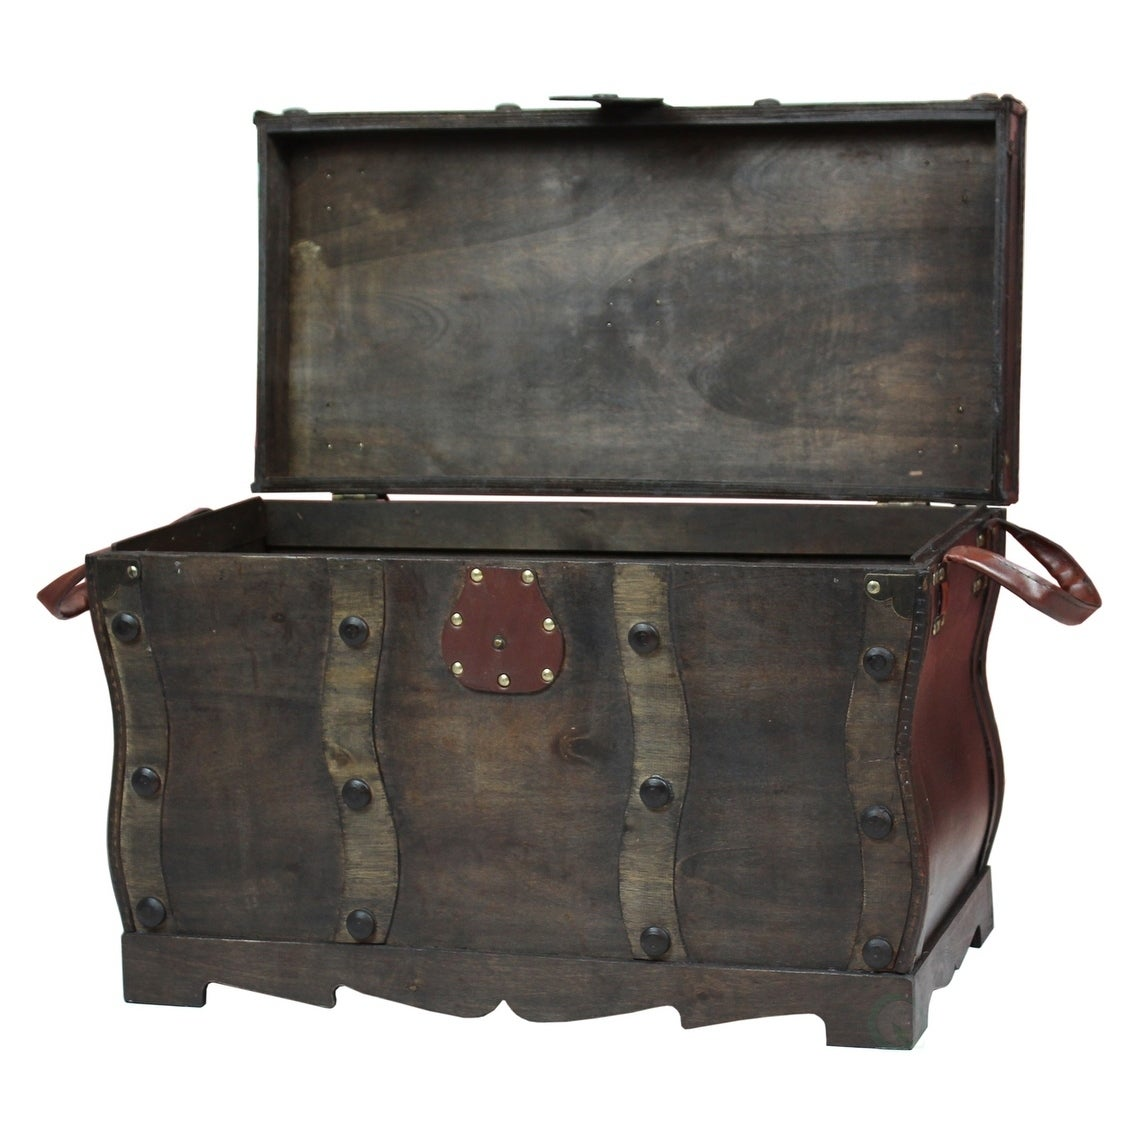 Shop Antique Style Wooden Pirate Treasure Chest, Coffee Table Trunk   Black    Free Shipping Today   Overstock.com   16837049